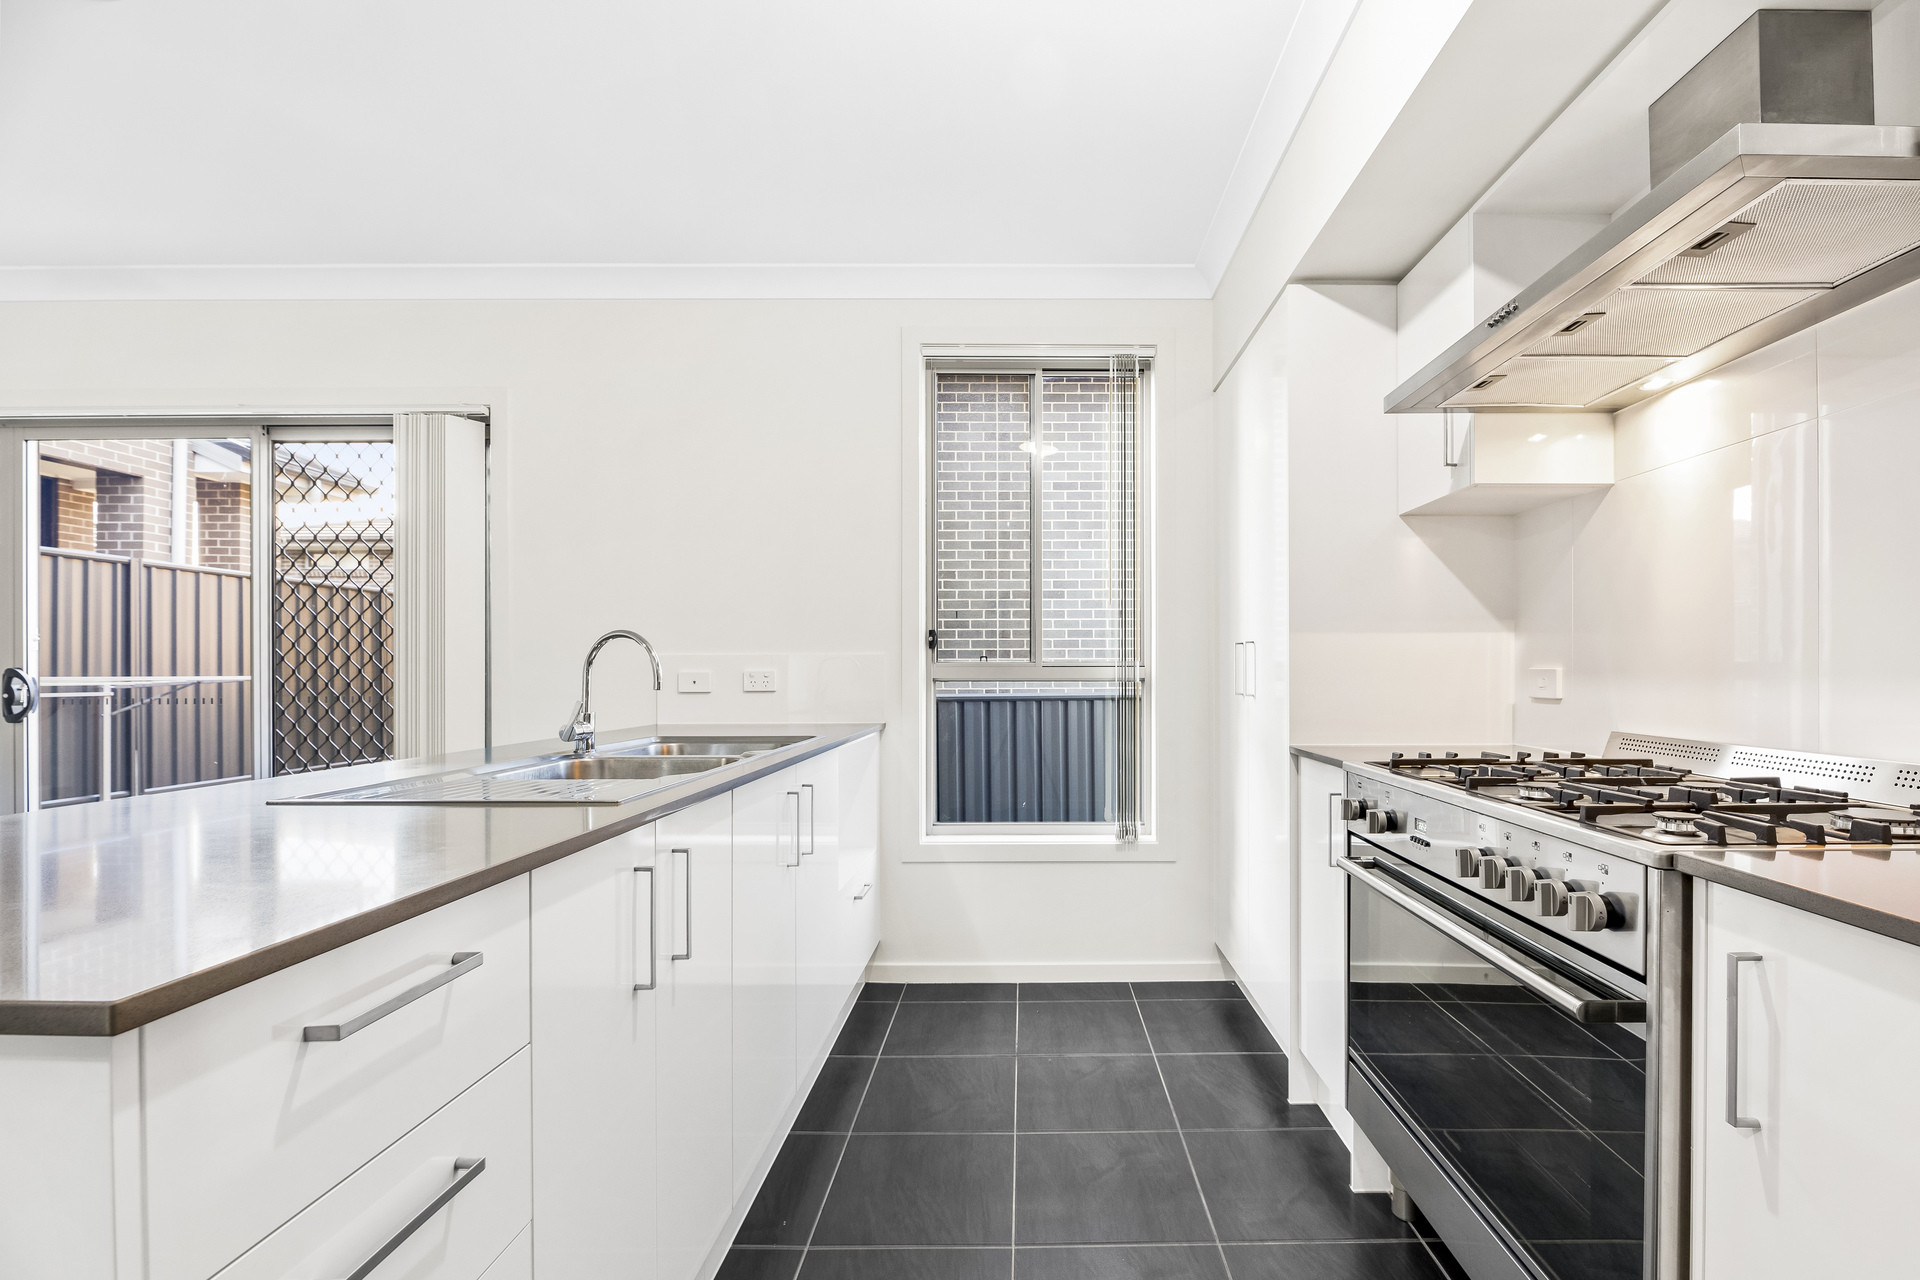 DUAL OCCUPANCY FAMILY HOME WITH STUDIO IN THE HEART OF EDMONDSON PARK.